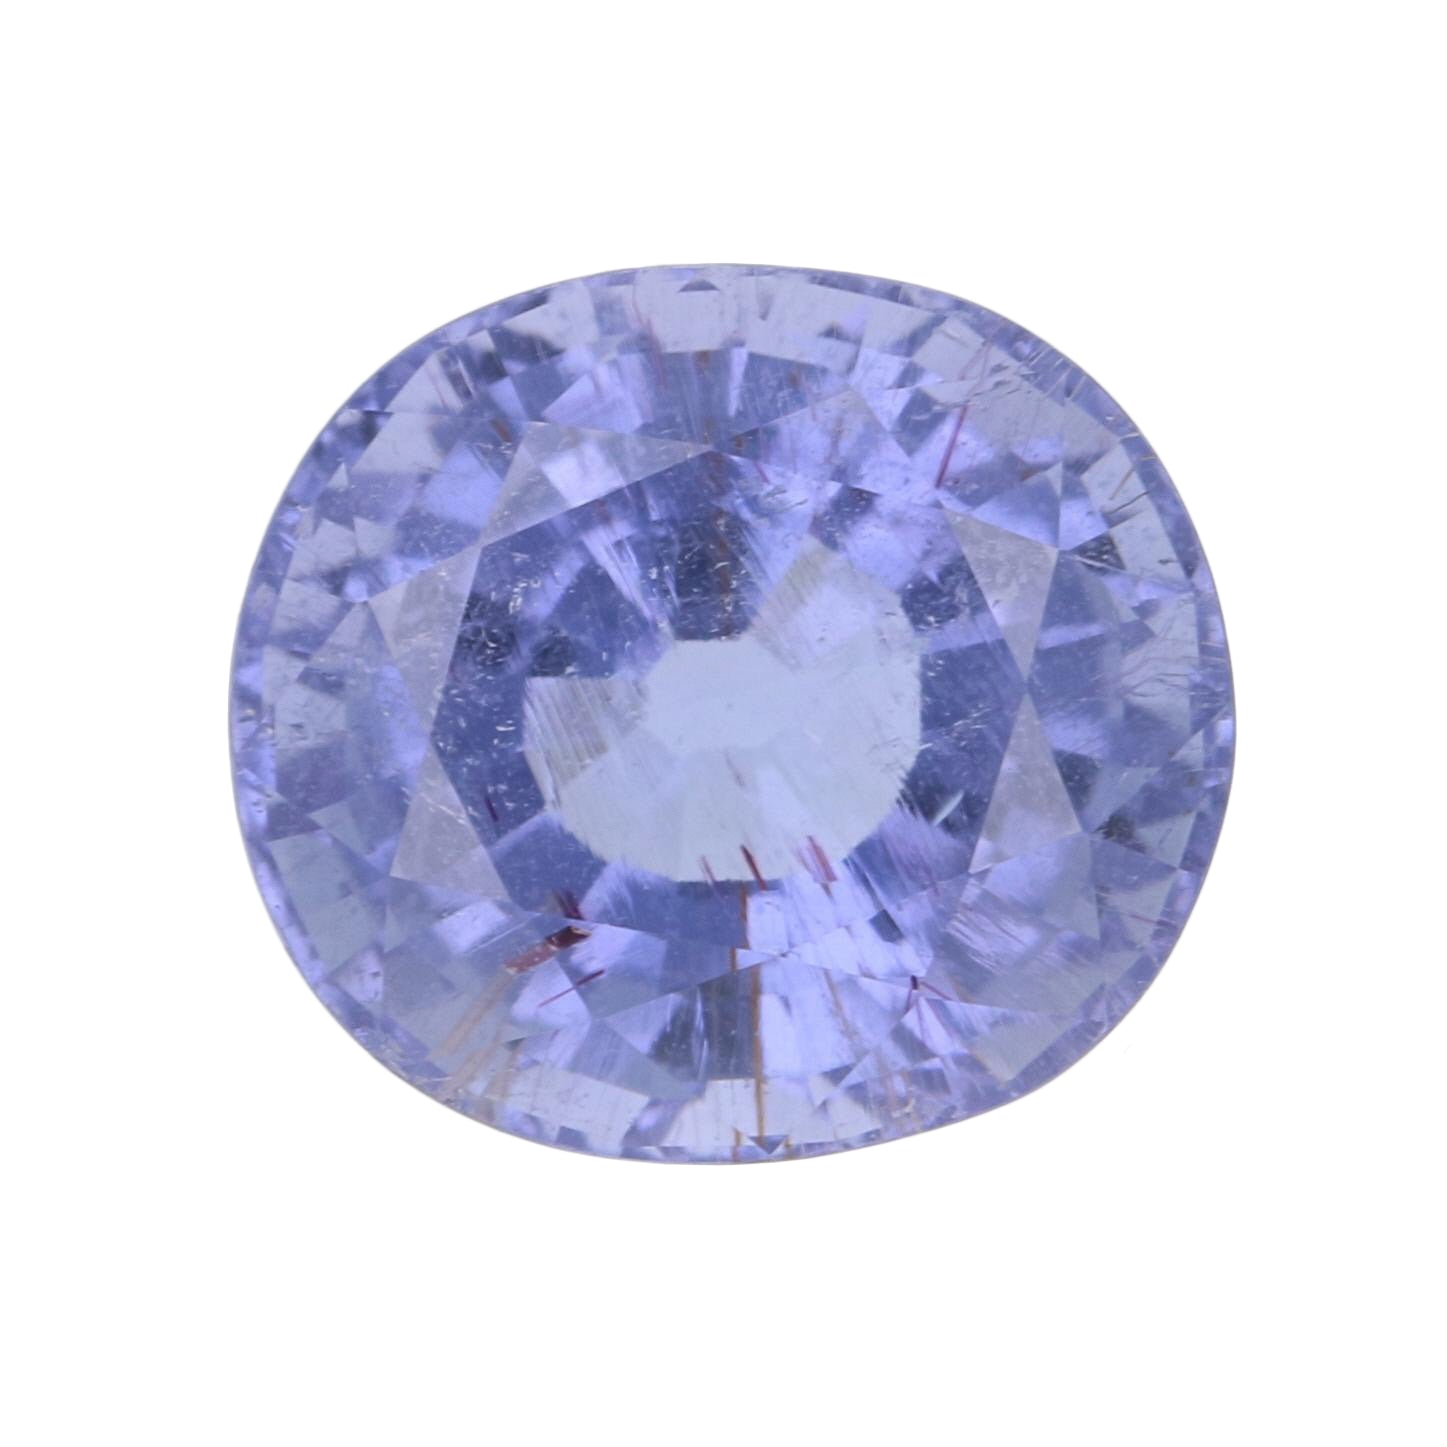 Loose Purple Tourmaline - Oval Cut 8.98ct GIA